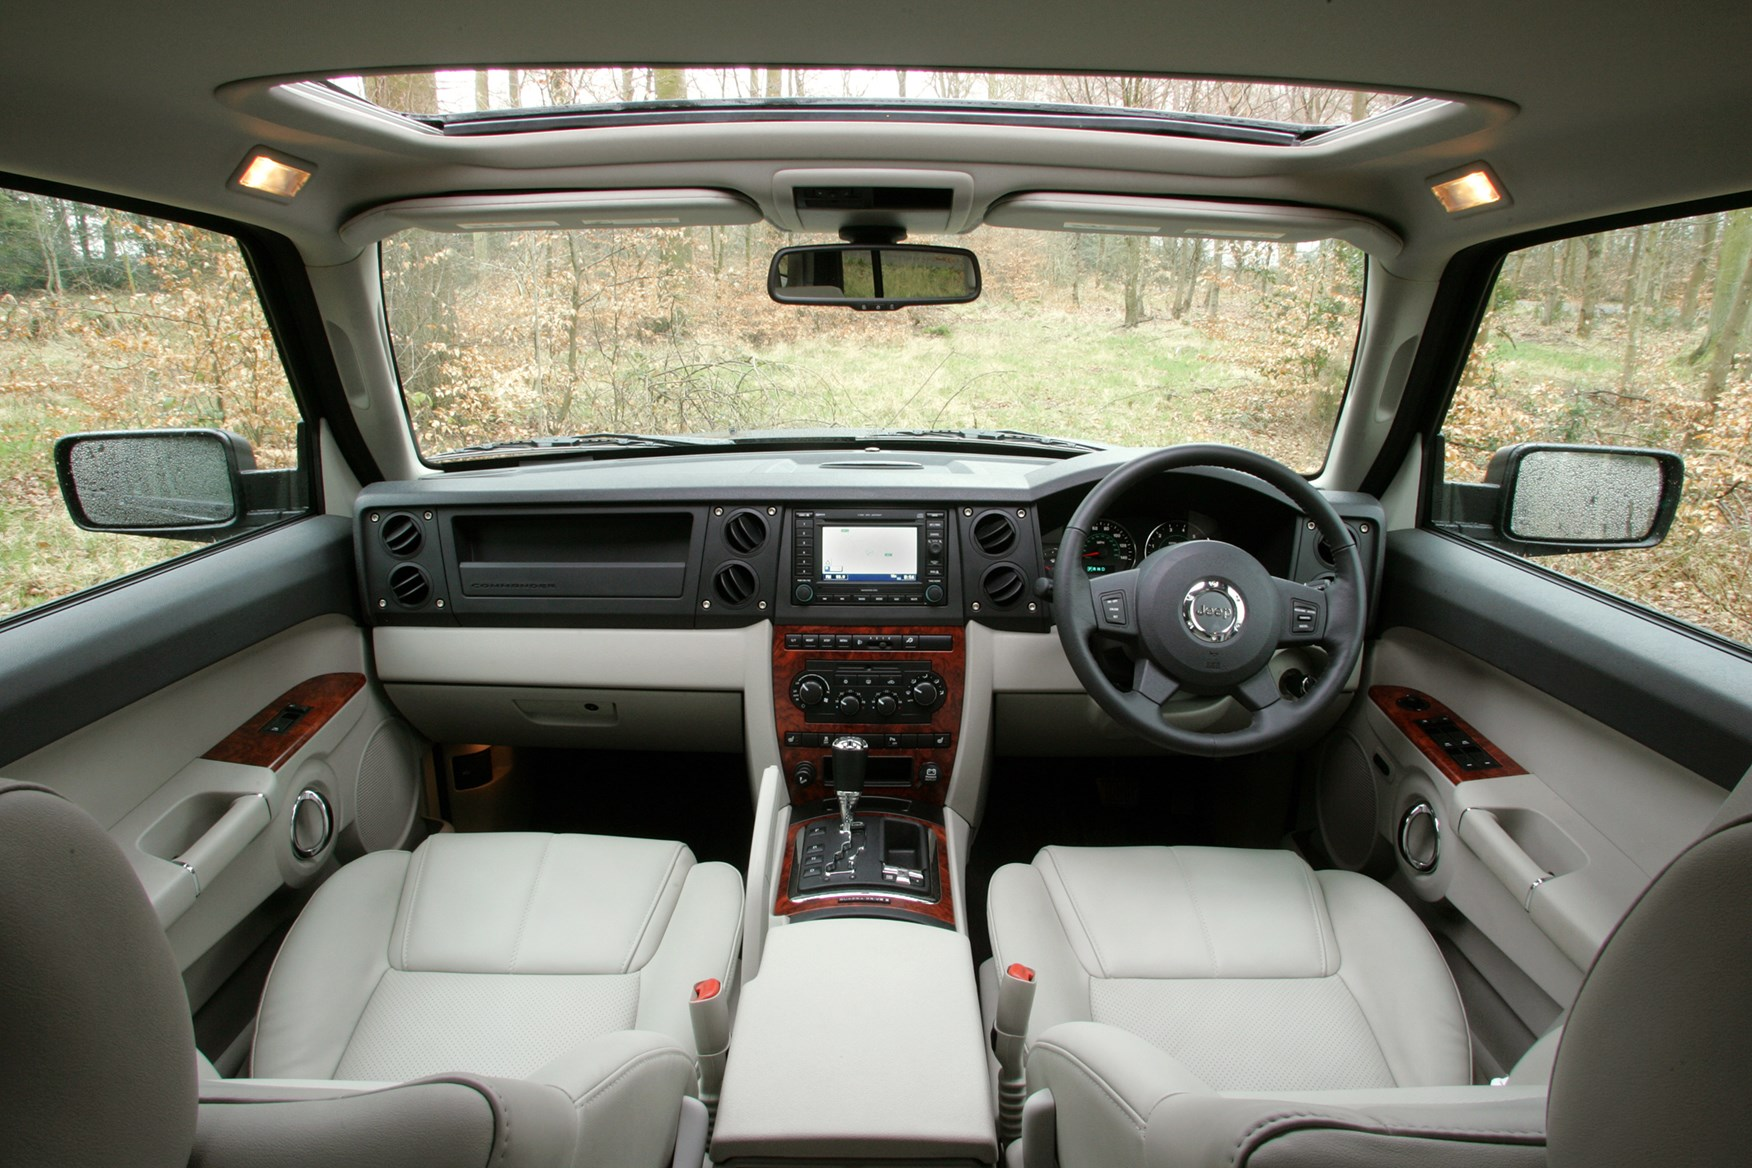 Jeep commander station wagon review 2006 2009 parkers for Jeep commander interior